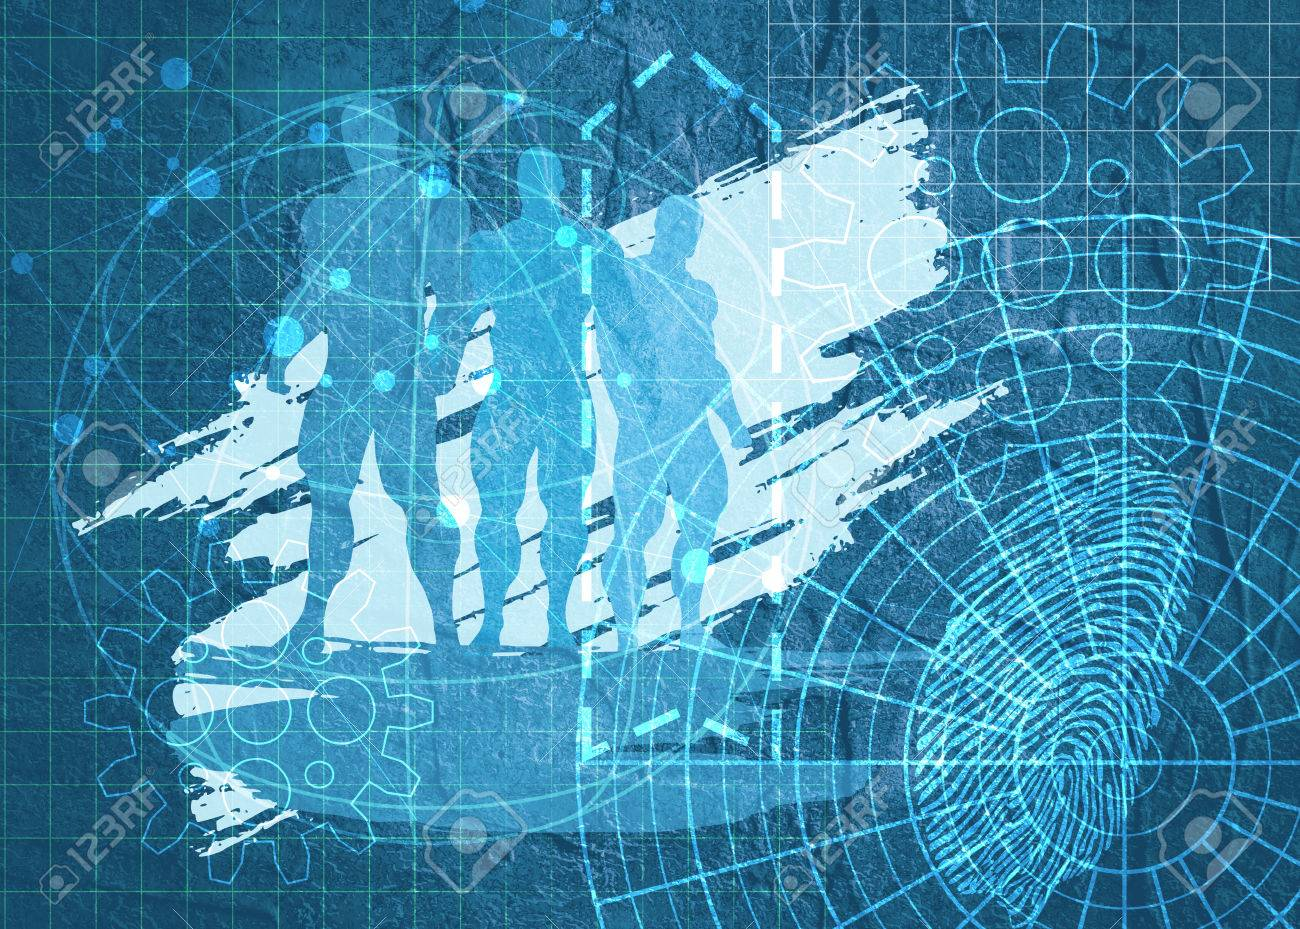 Old blueprint background texture technical backdrop paper old blueprint background texture technical backdrop paper silhouettes of three men on concrete textured malvernweather Images